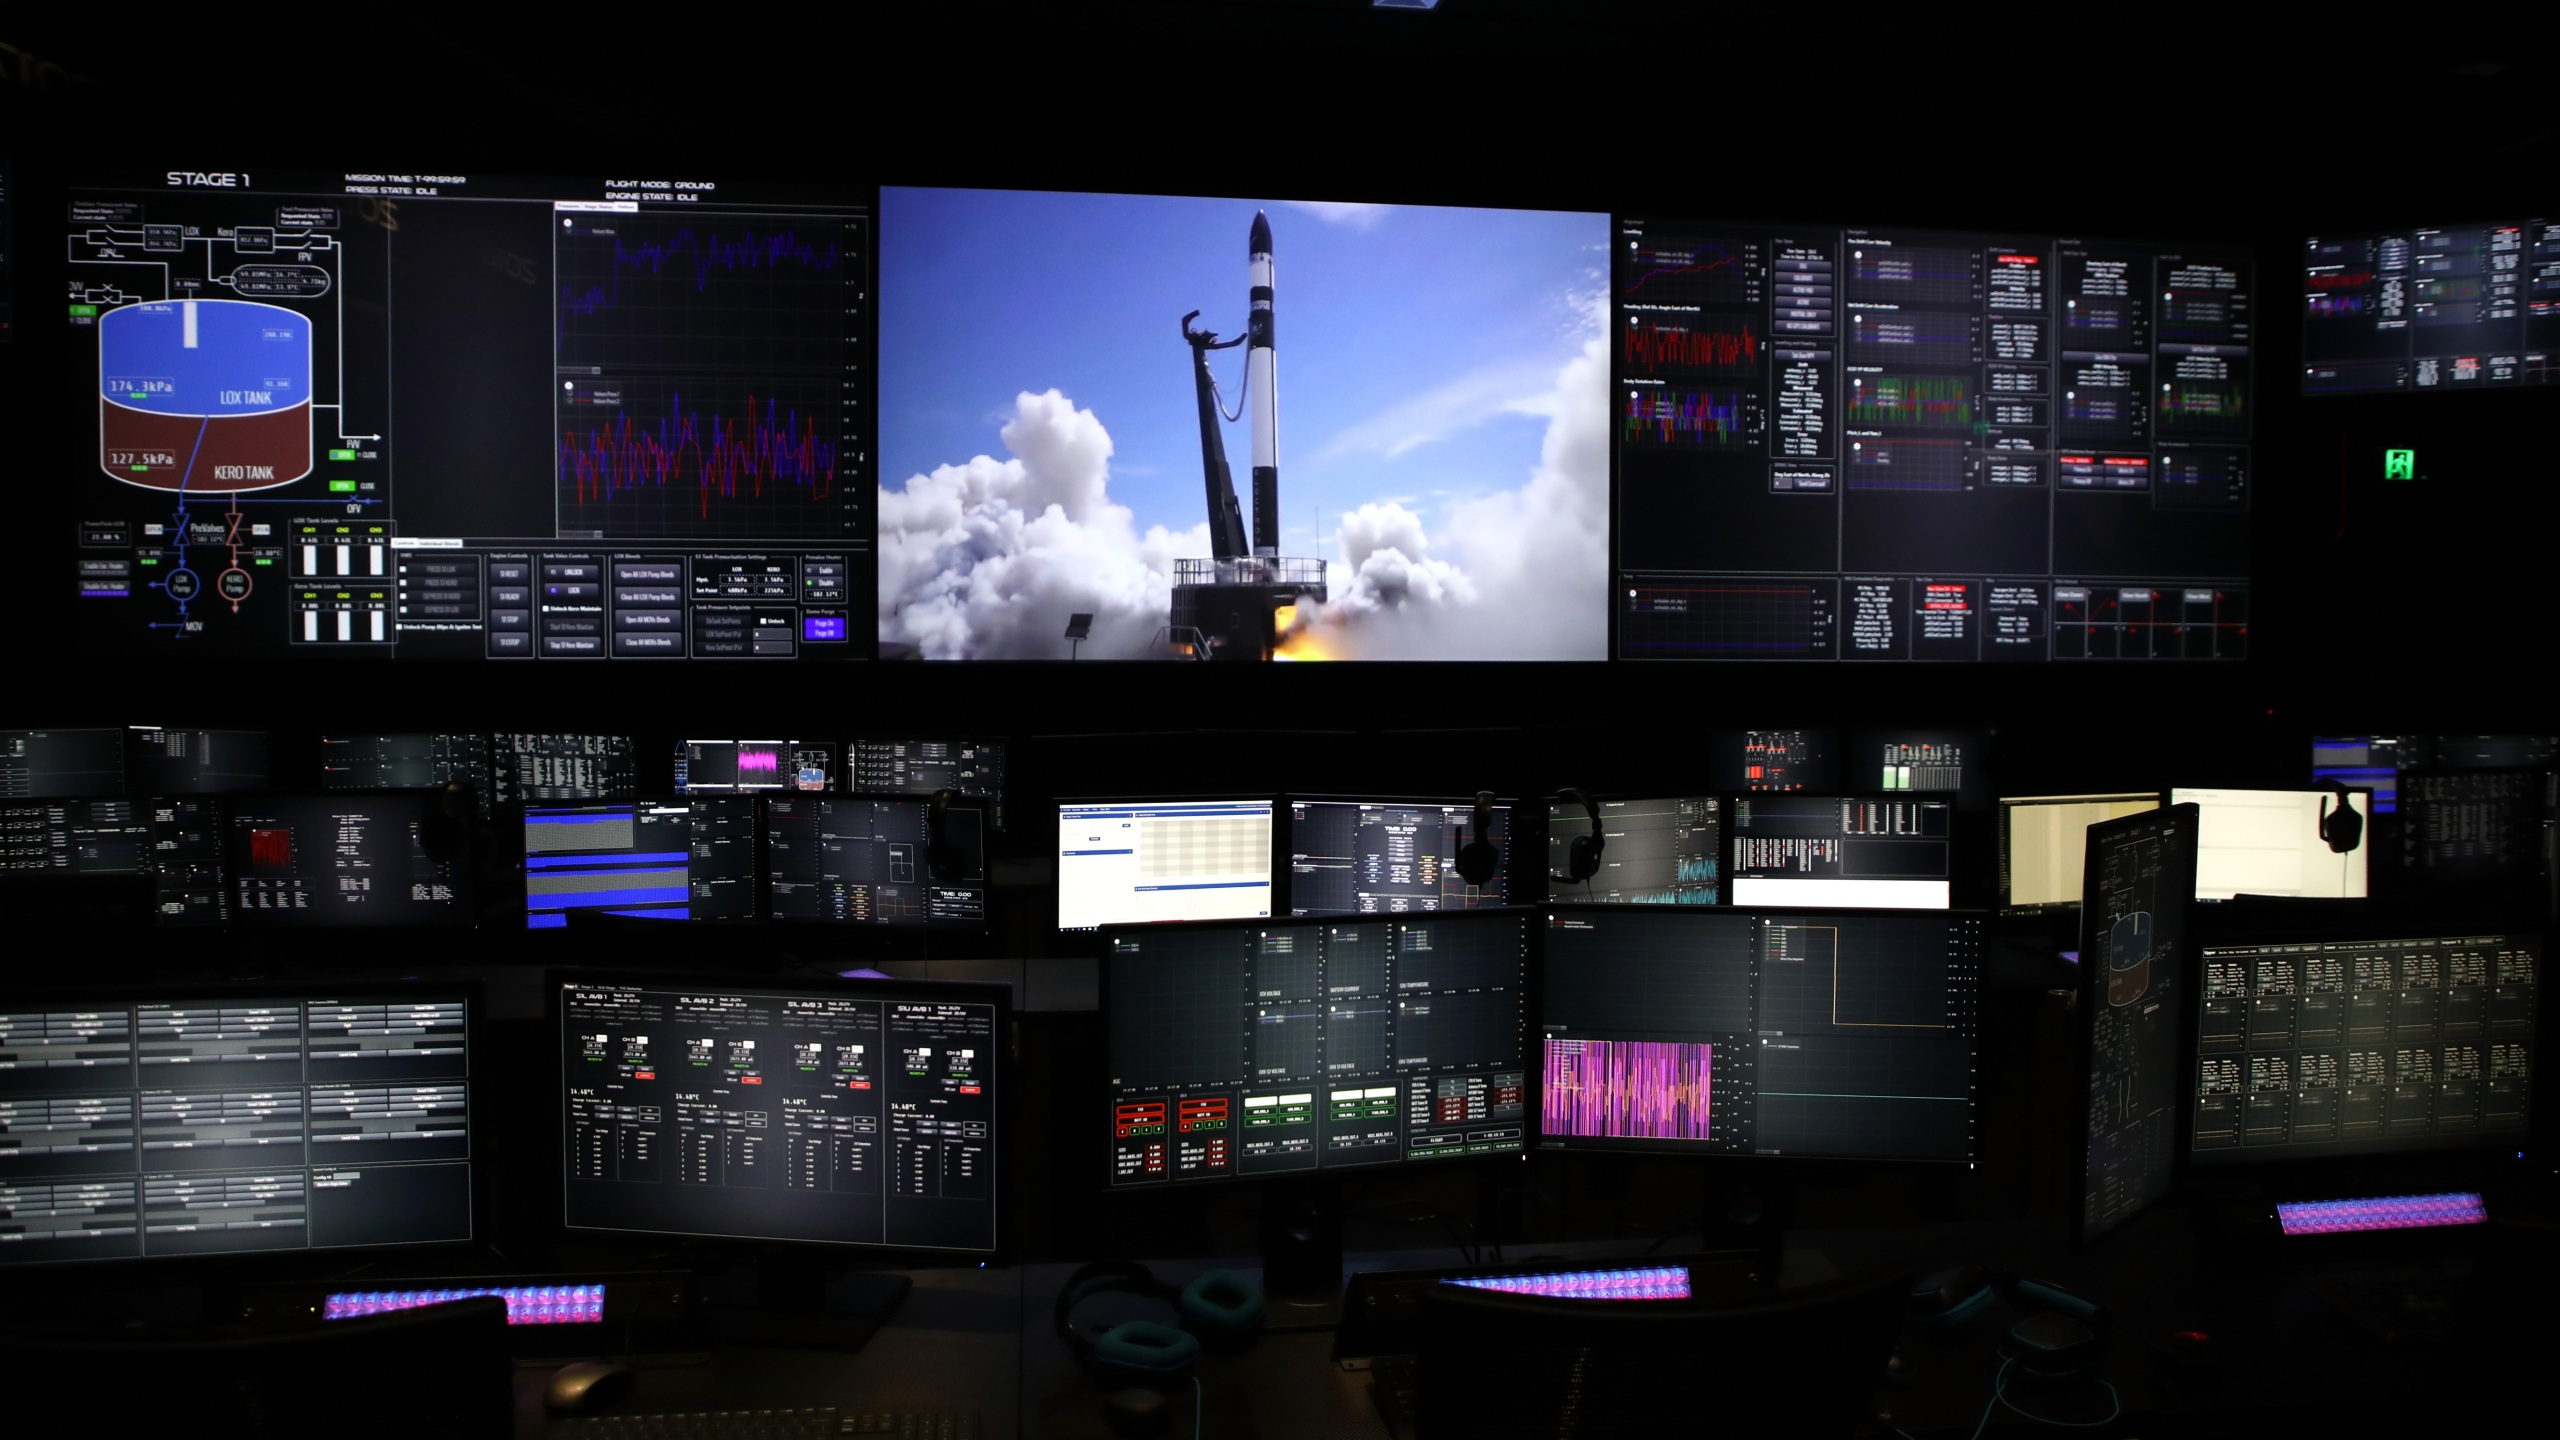 The Rocket Lab Mission Control room during the opening of the new Rocket Lab factory on October 12, 2018 in Auckland, New Zealand. (Phil Walter/Getty Images)